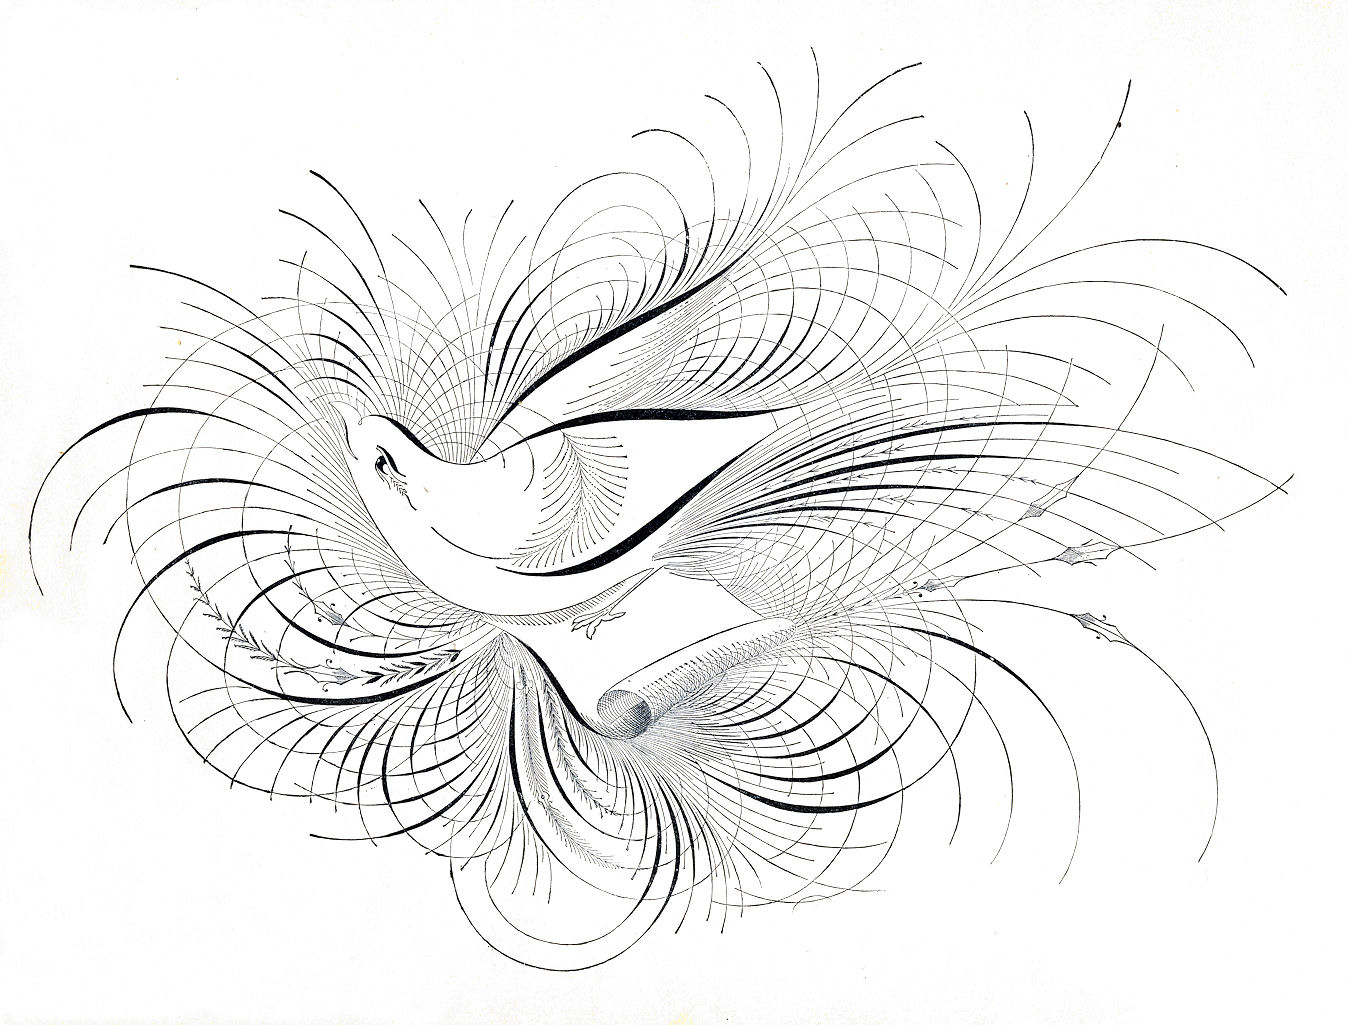 Calligraphy art bird pixshark images galleries